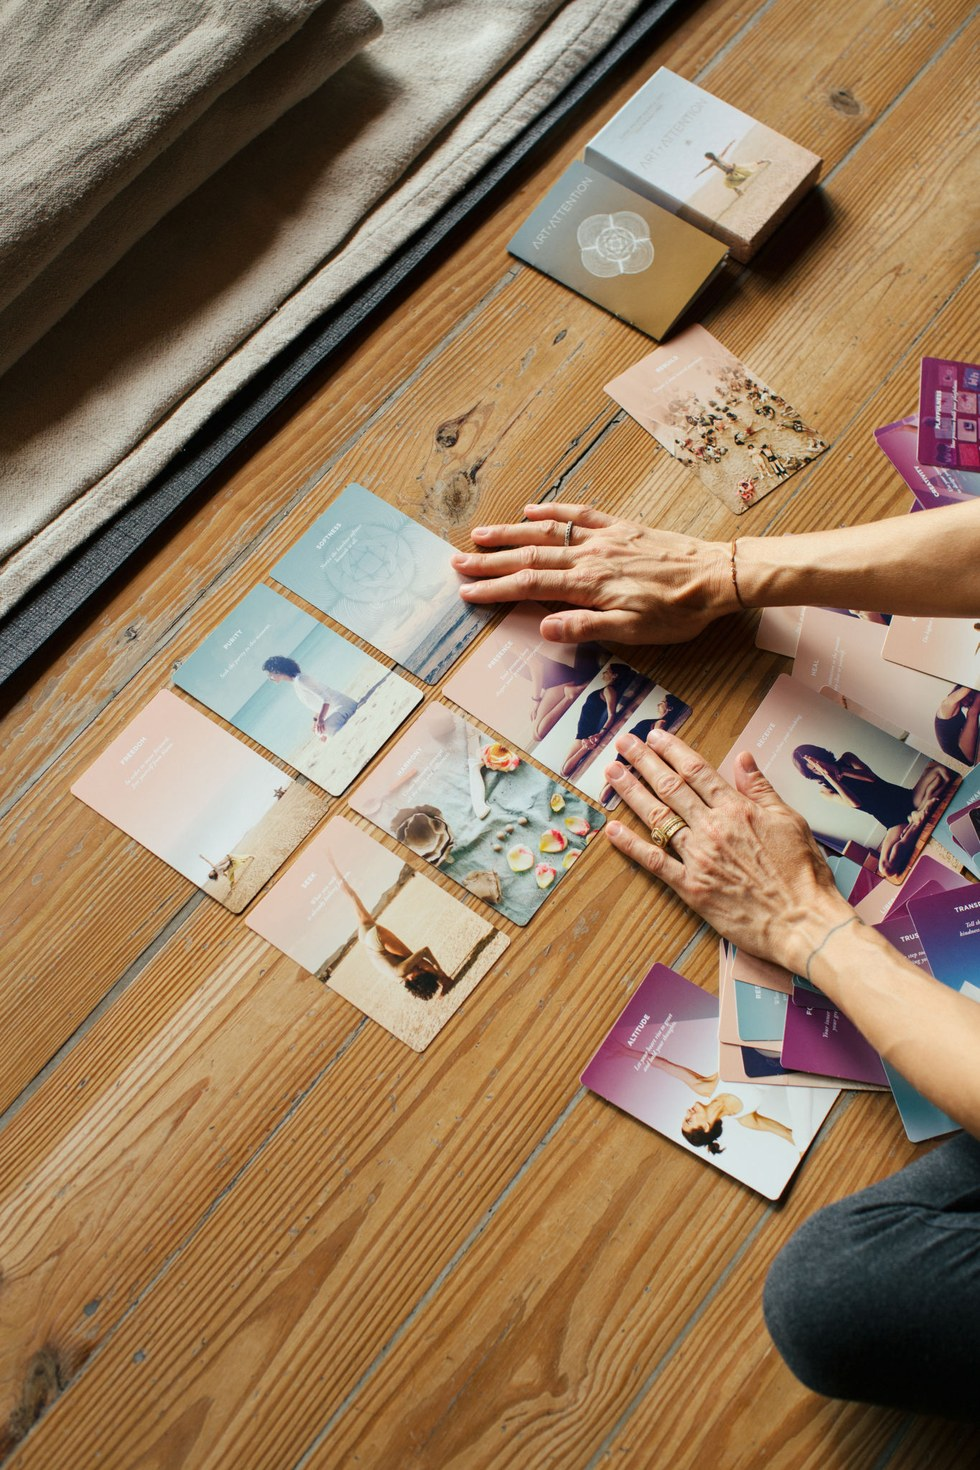 Brower's Art of Attention yoga cards spread out, offering positive affirmations and yoga poses